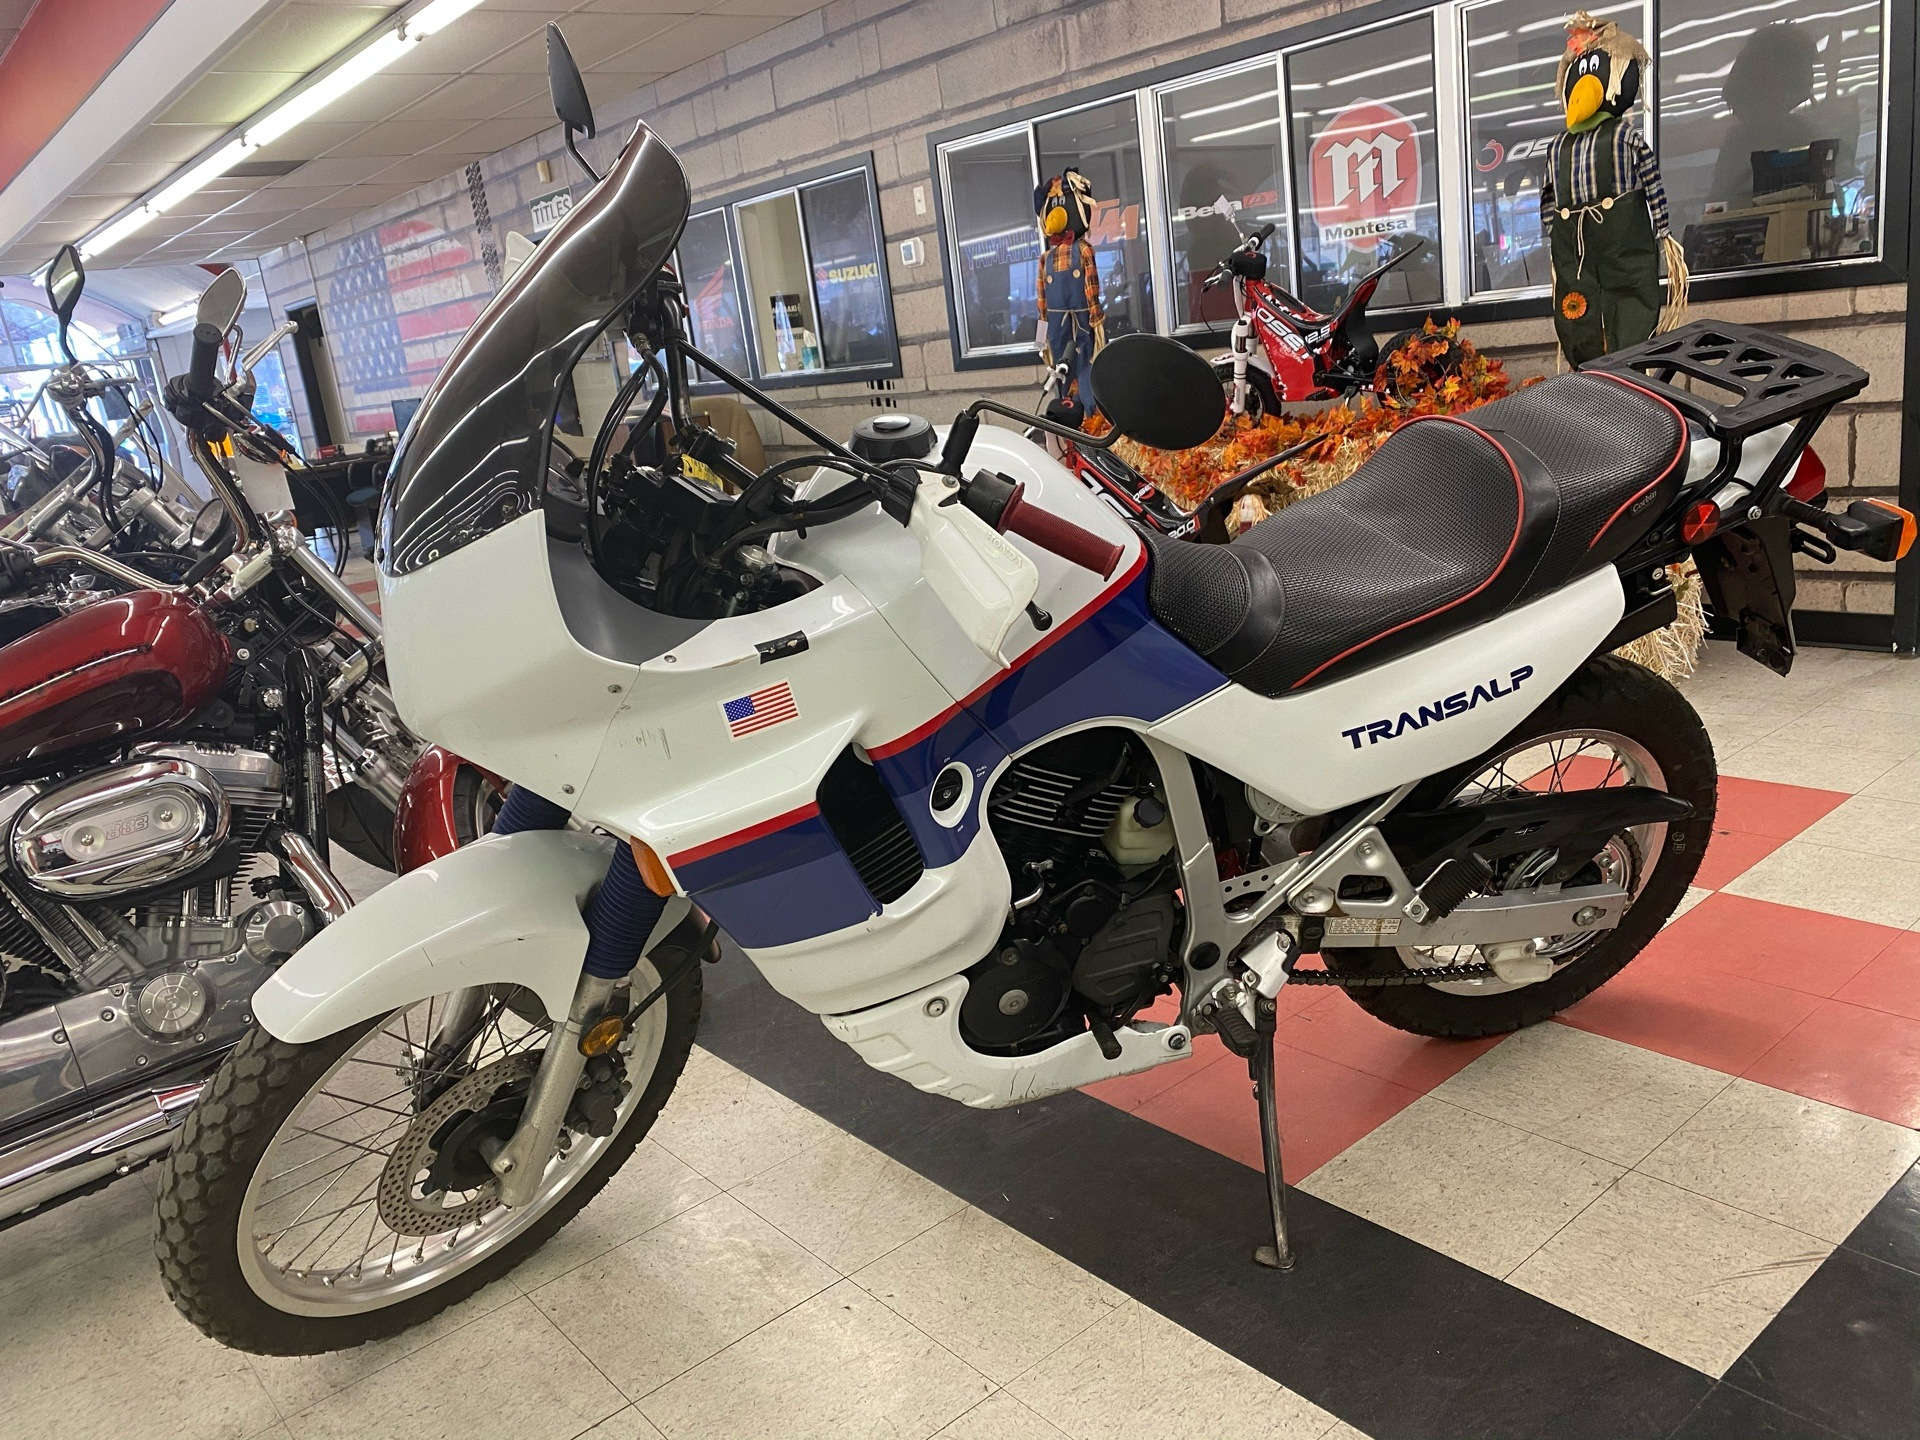 1989 Honda XL600 V TRANSALP in Colorado Springs, Colorado - Photo 1